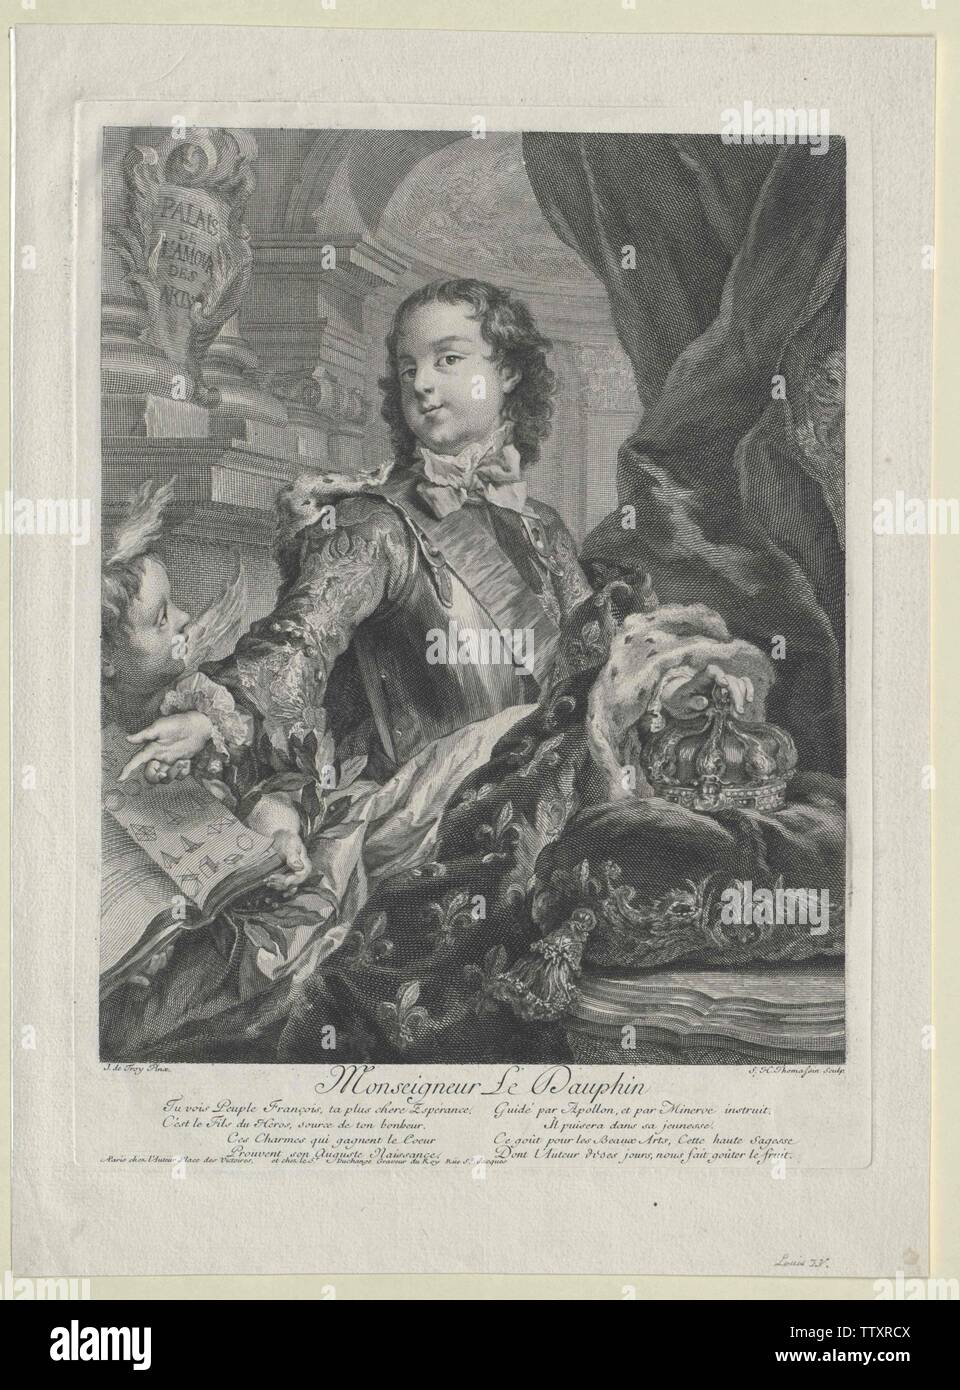 Luis XV, rey de Francia, Additional-Rights-Clearance-Info-Not-Available Foto de stock